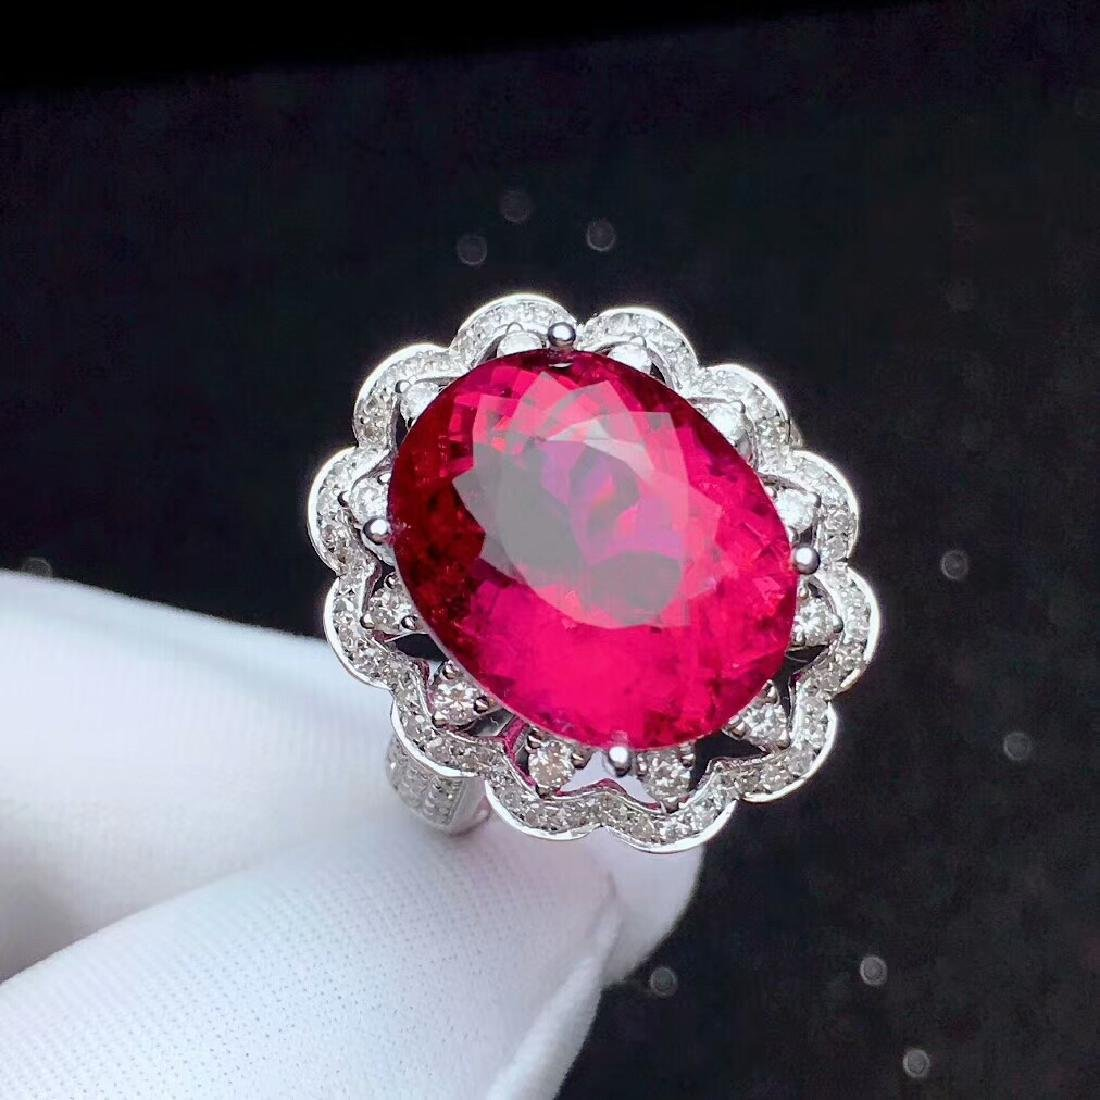 9.8ct Tourmaline Ring in 18kt White Gold - 2